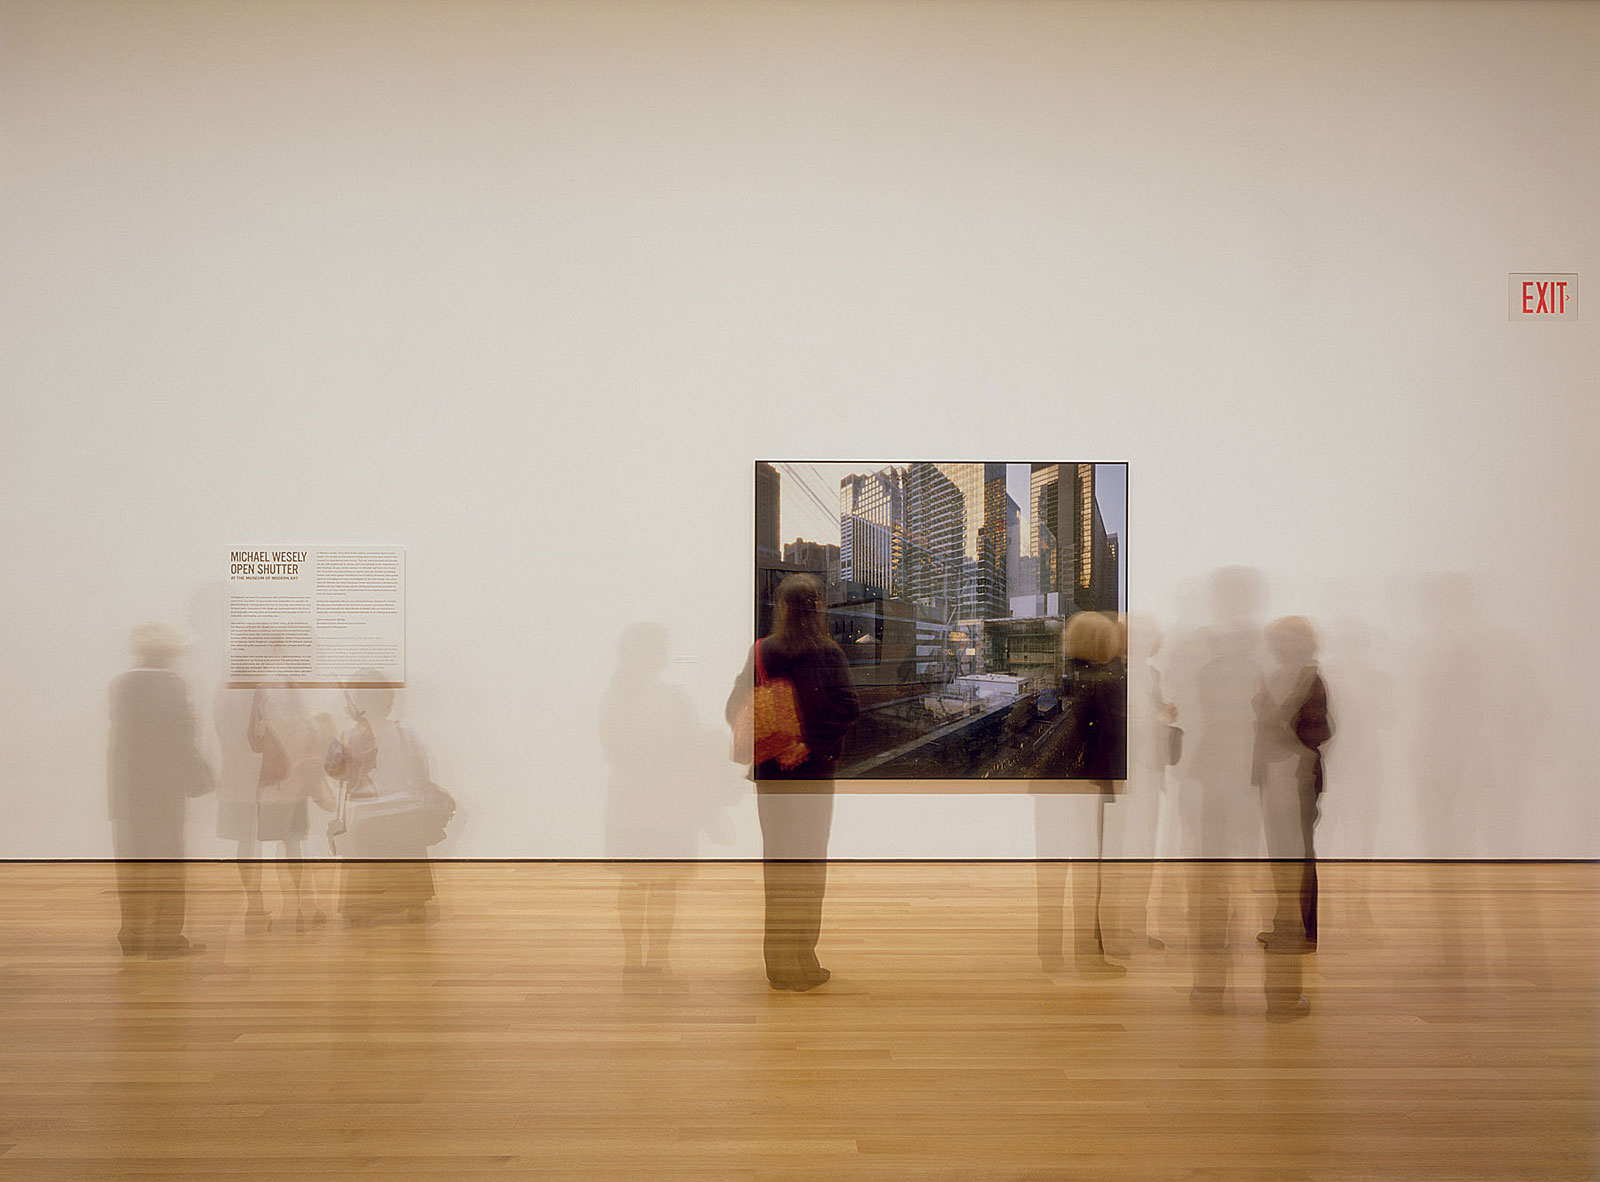 The Museum of Modern Art, New York (14.35 - 14.40 Uhr, 19.11.2004)